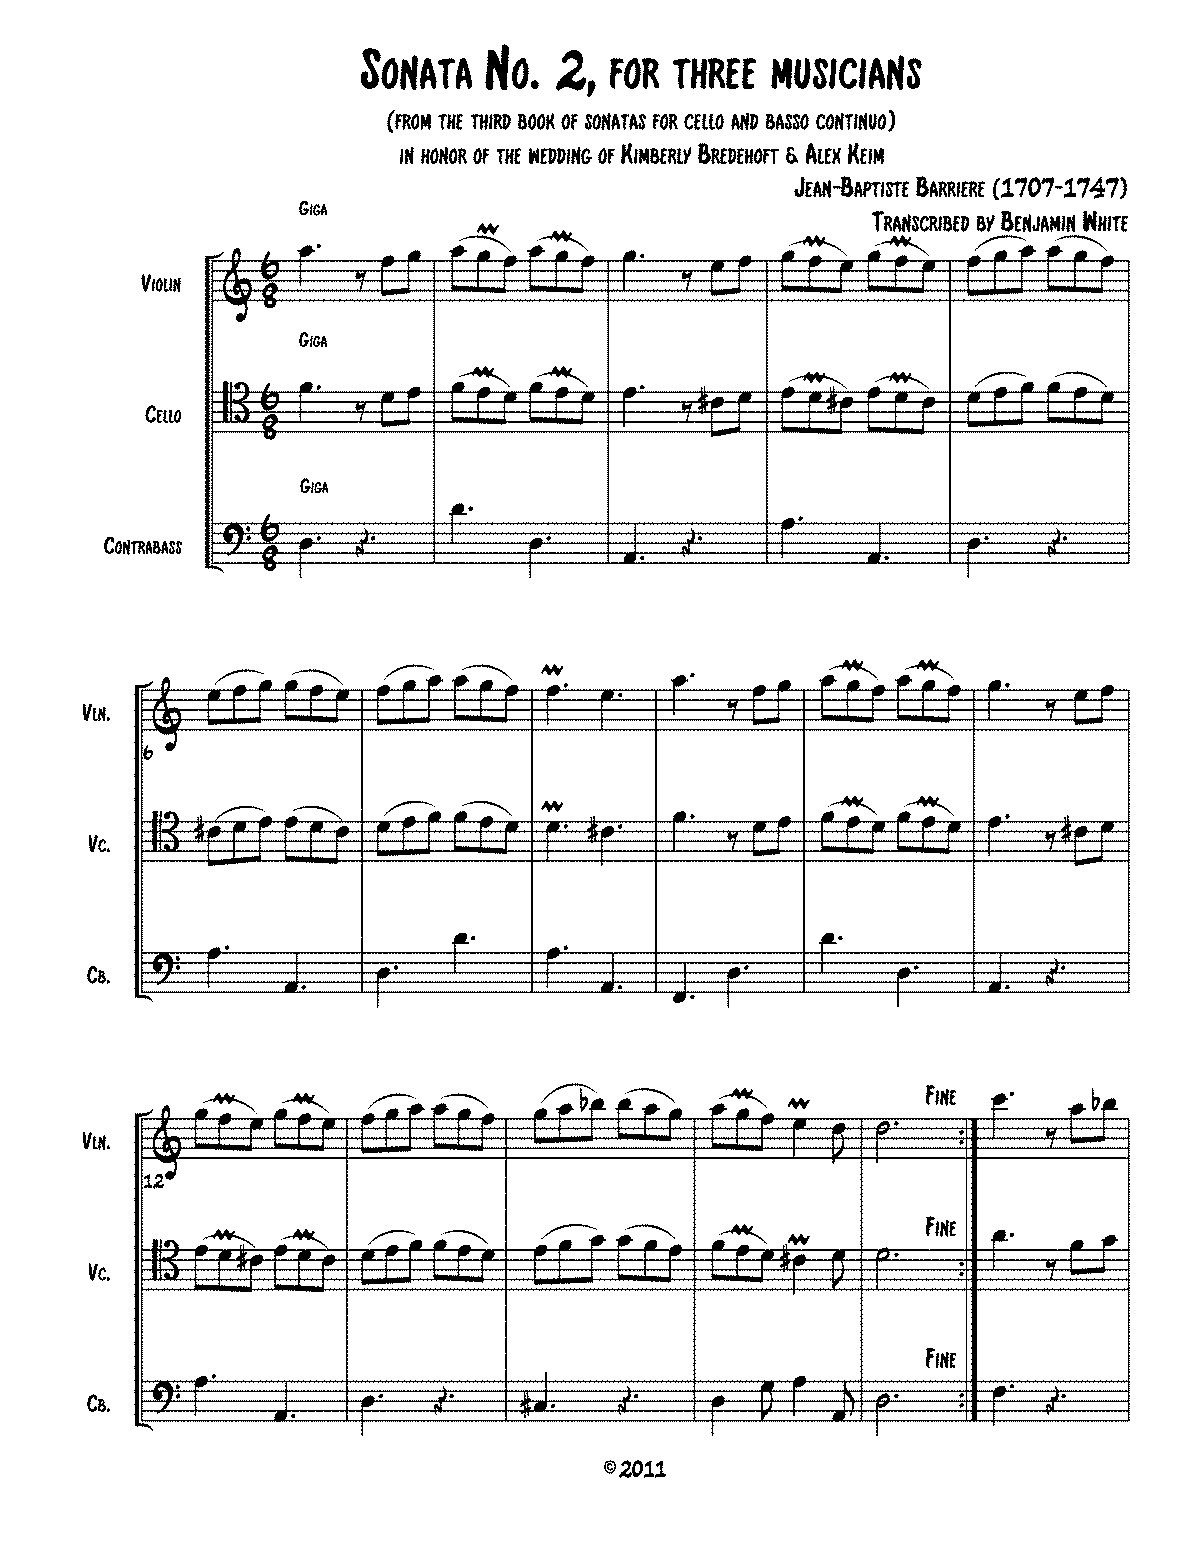 PMLP140830-Barriere - Sonata No 2 for Three Musicians.pdf